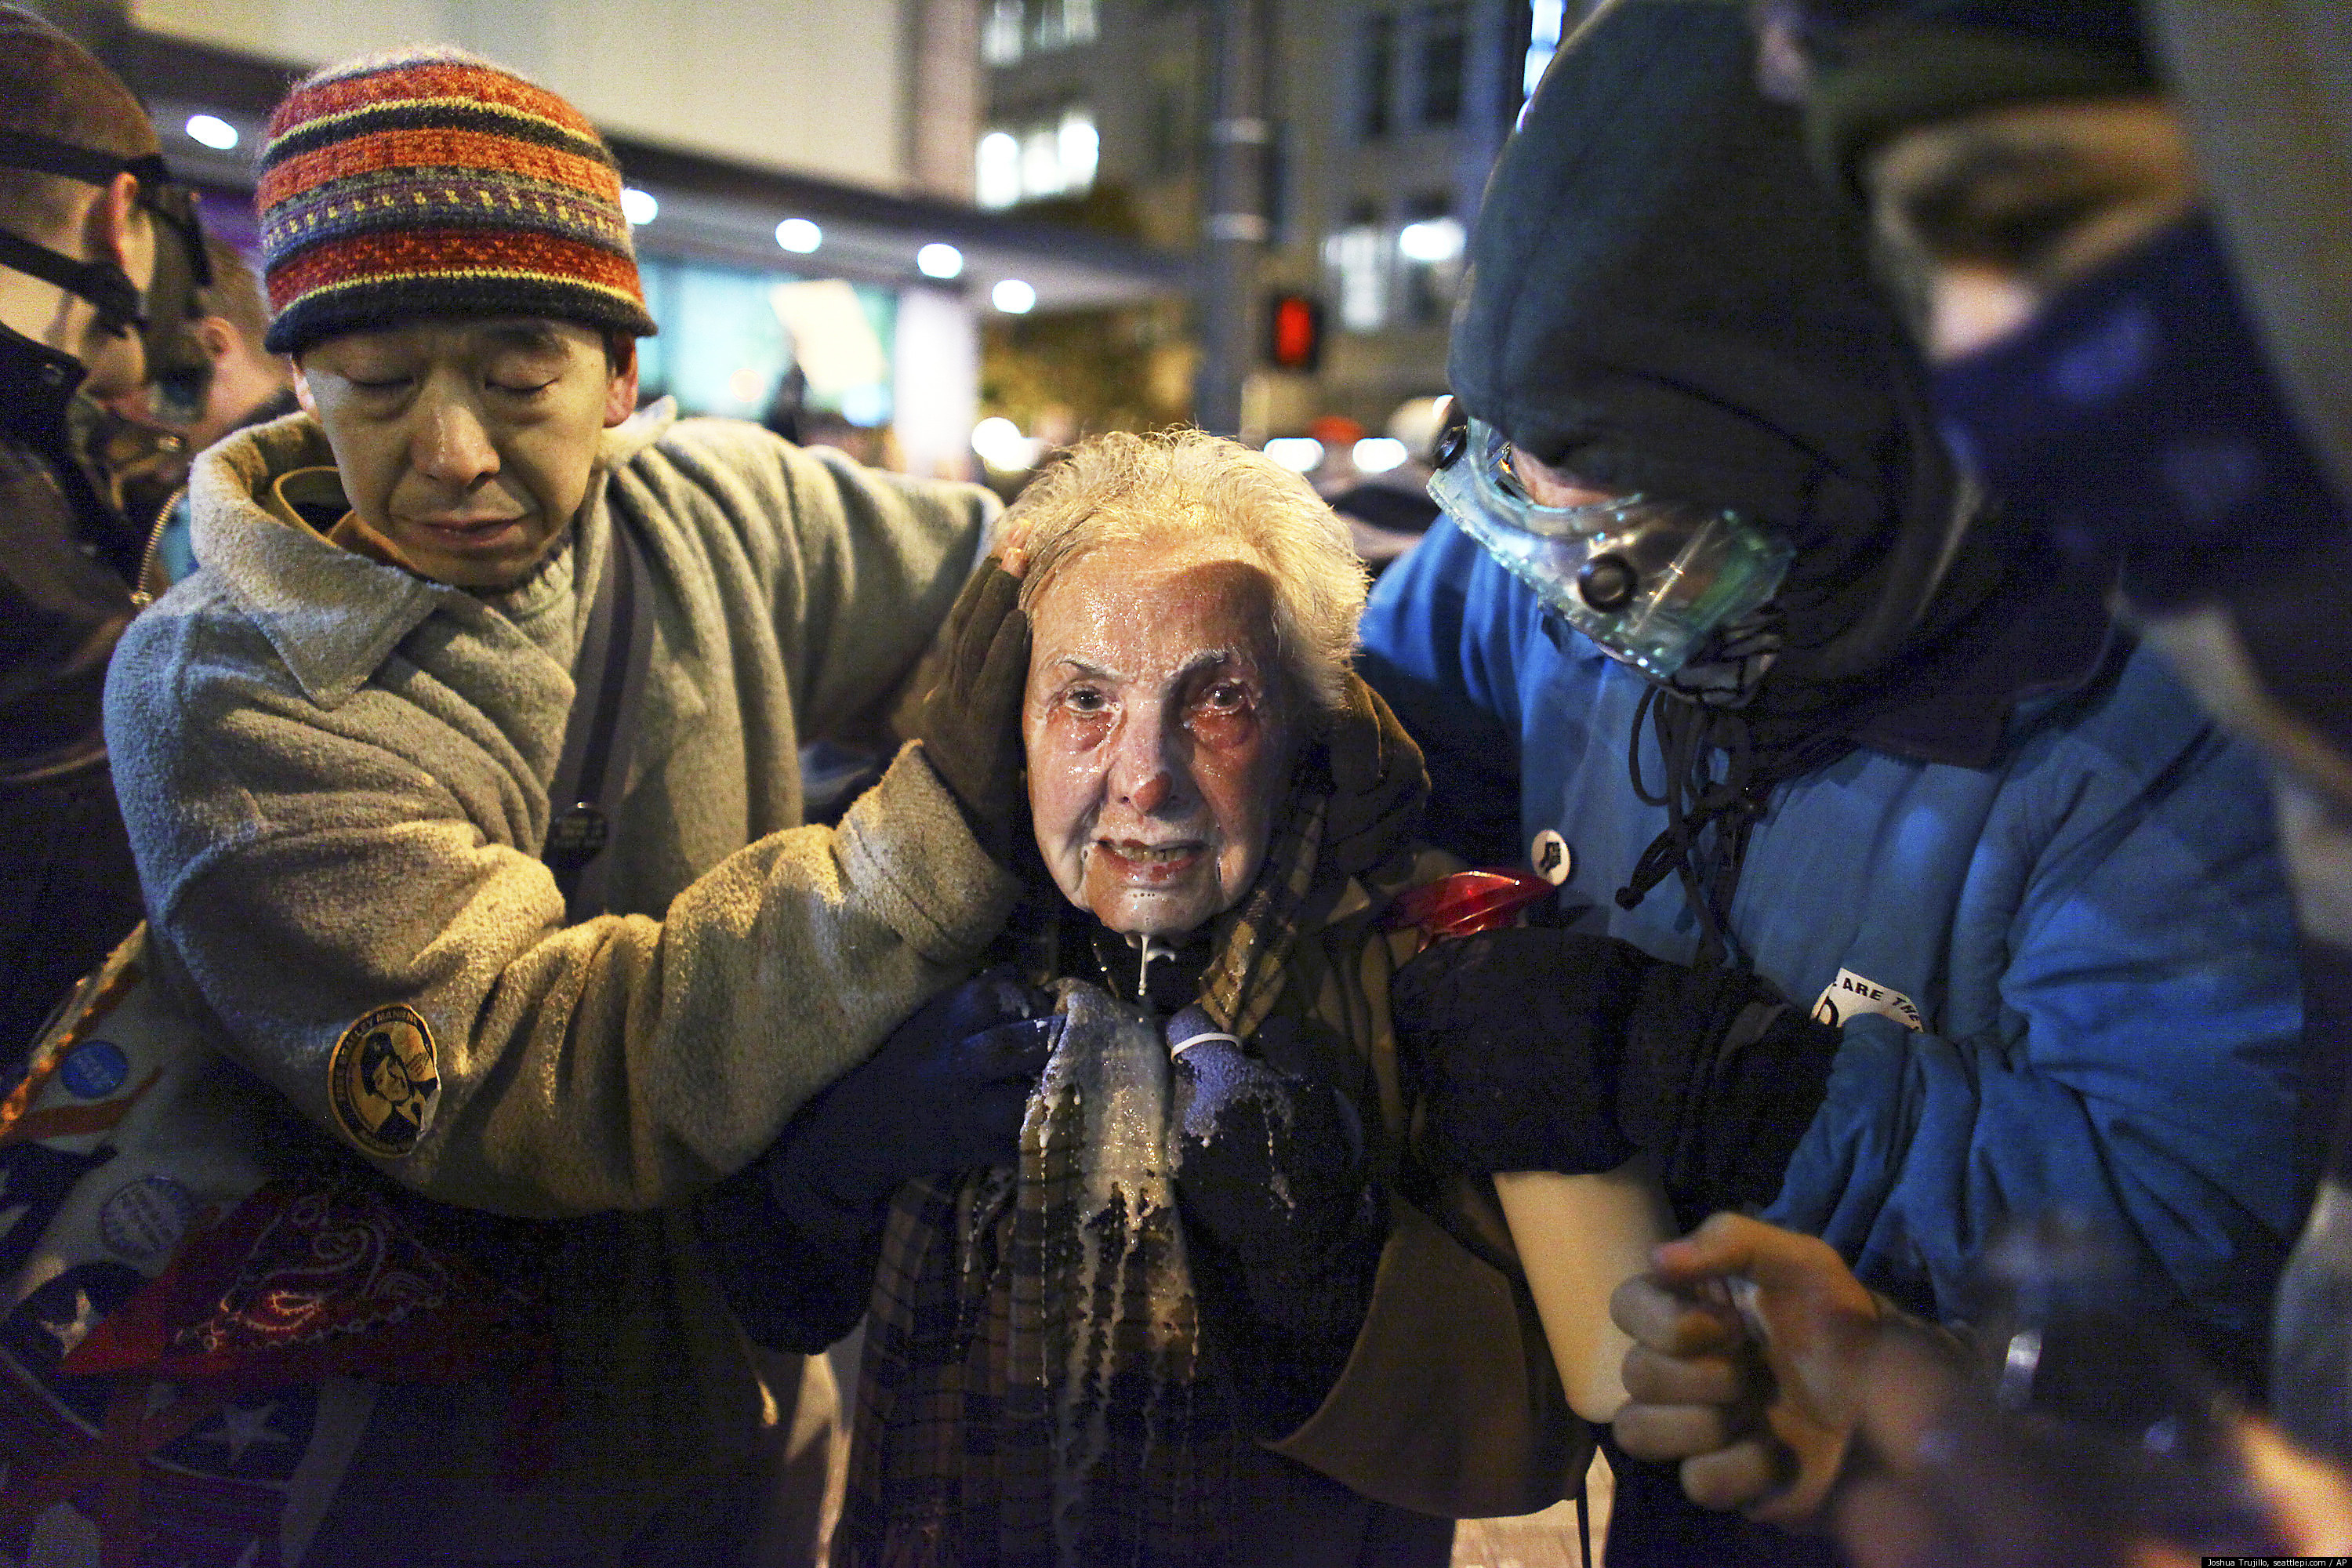 Dorli rainey 84 year old occupy seattle protester pepper sprayed in